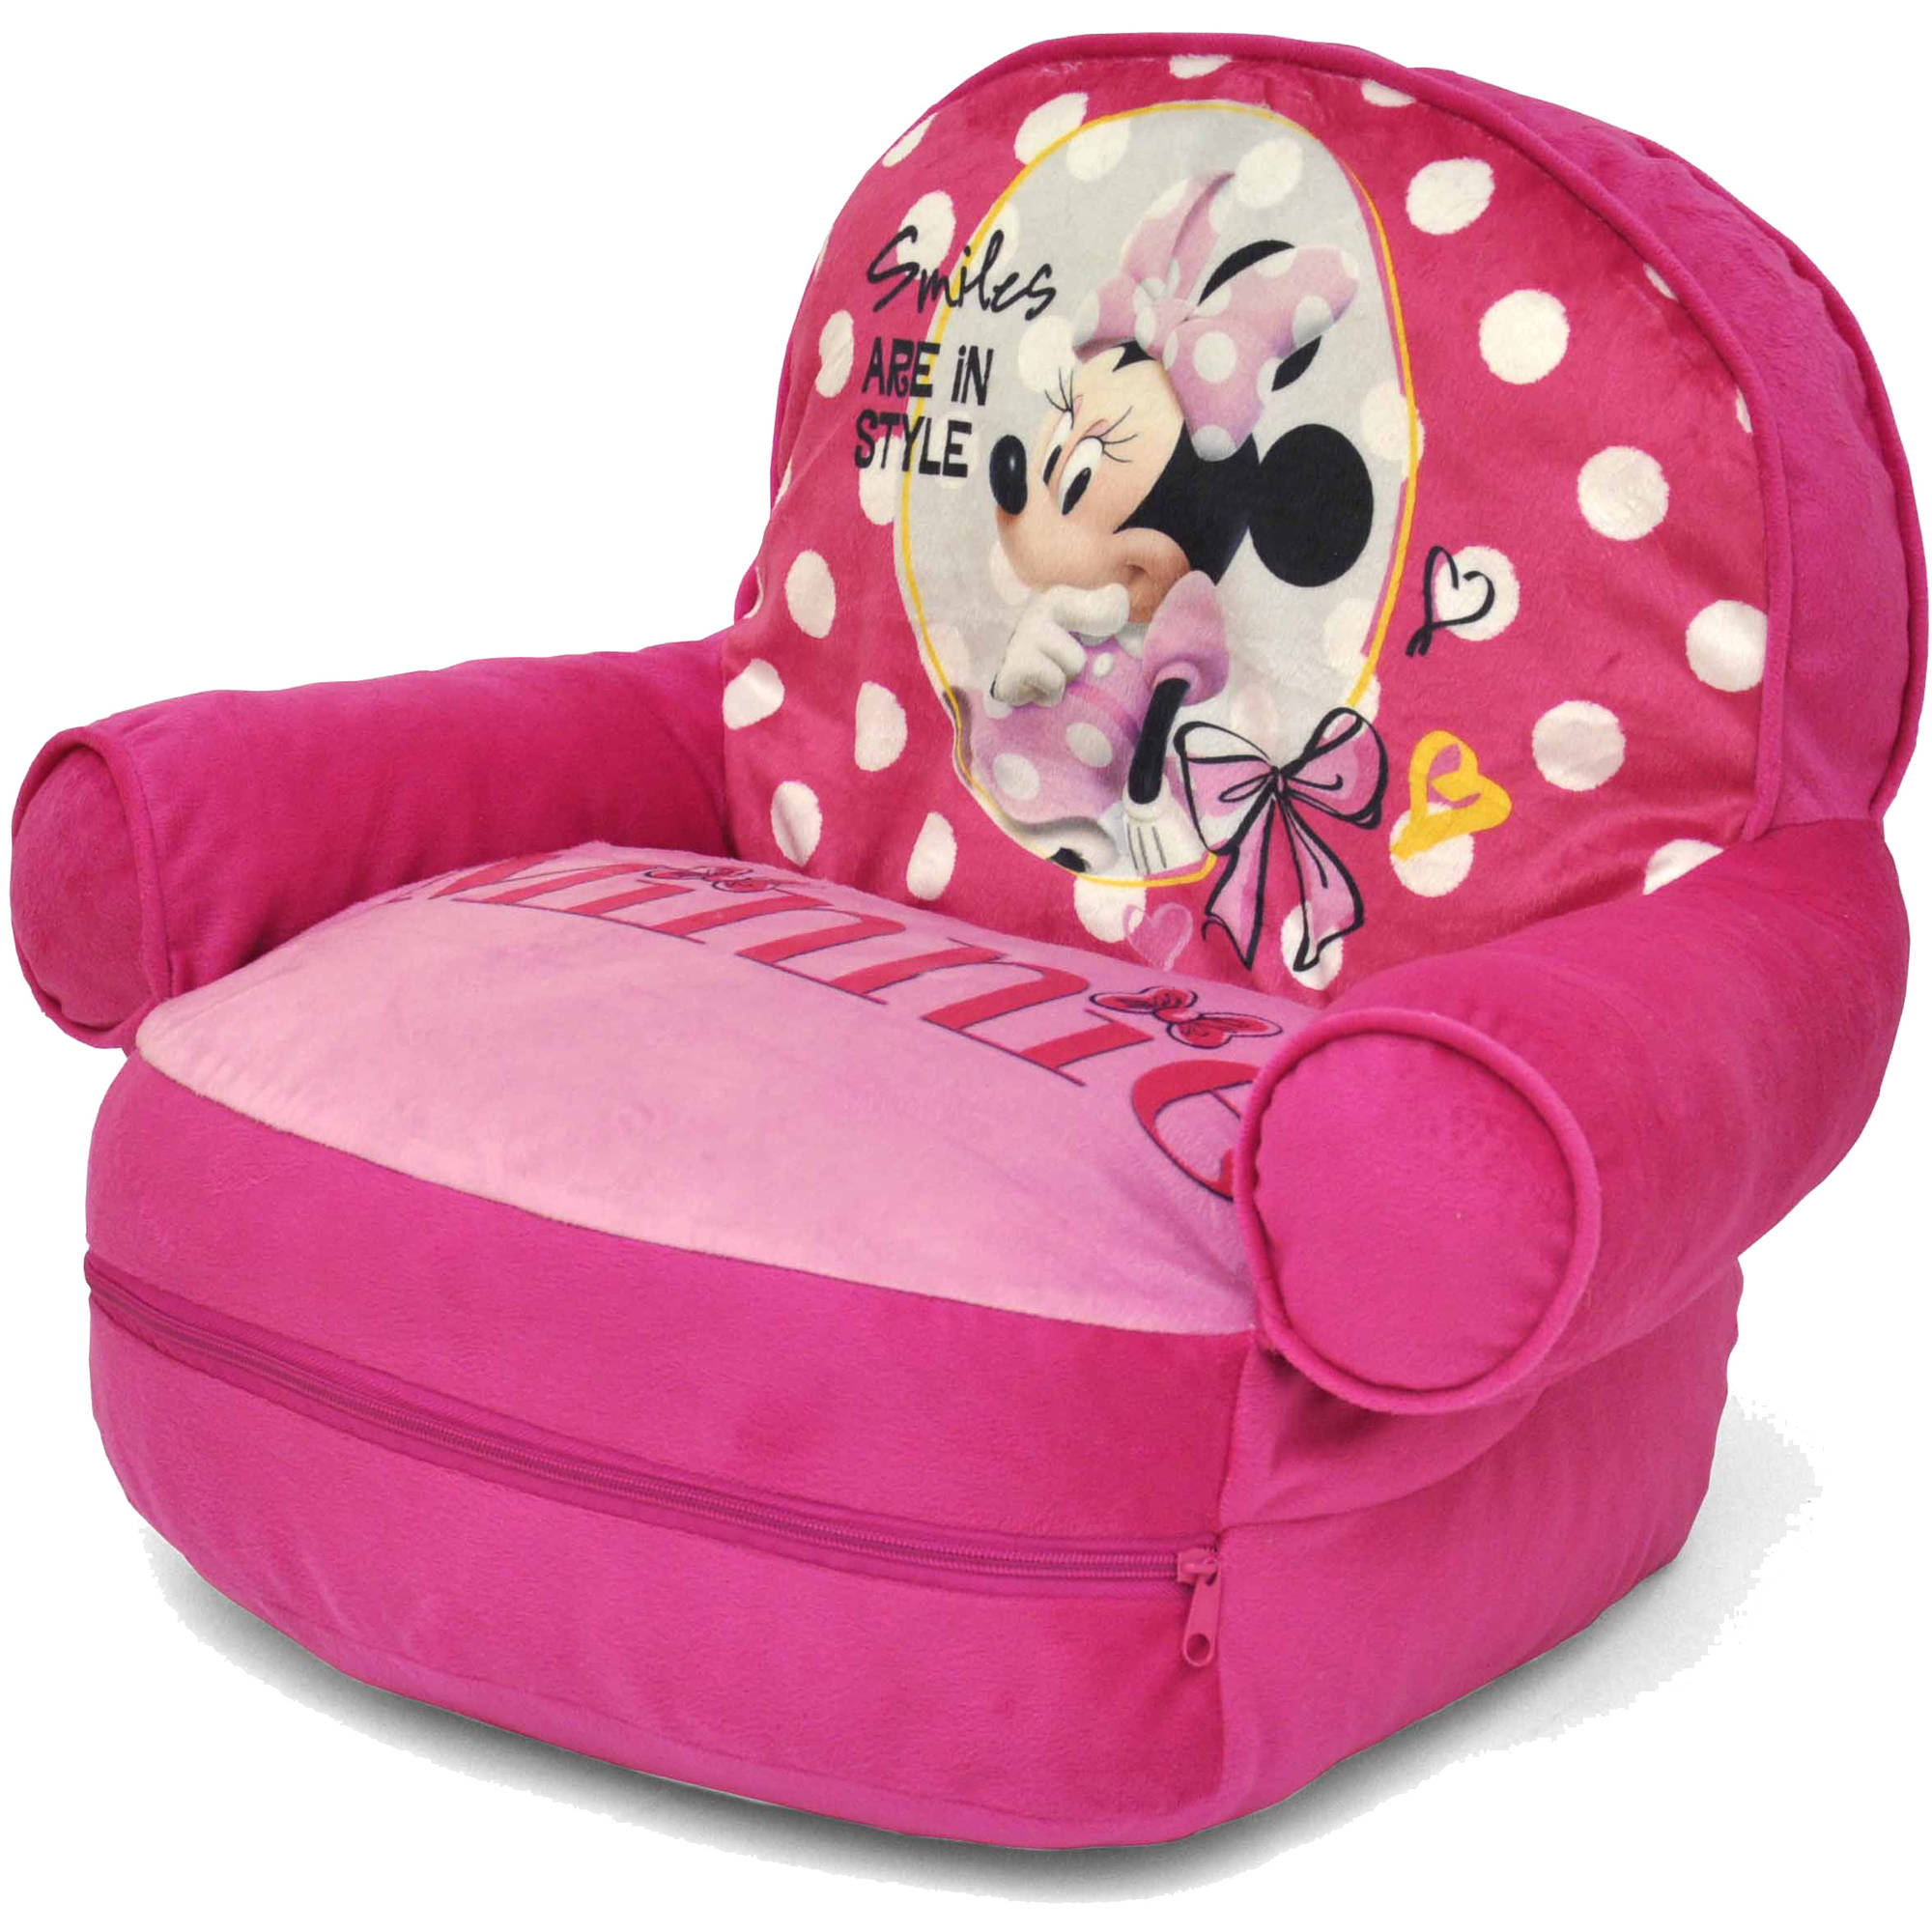 Disney Minnie Mouse Bean Bag With BONUS Slumber Bag   Walmart.com